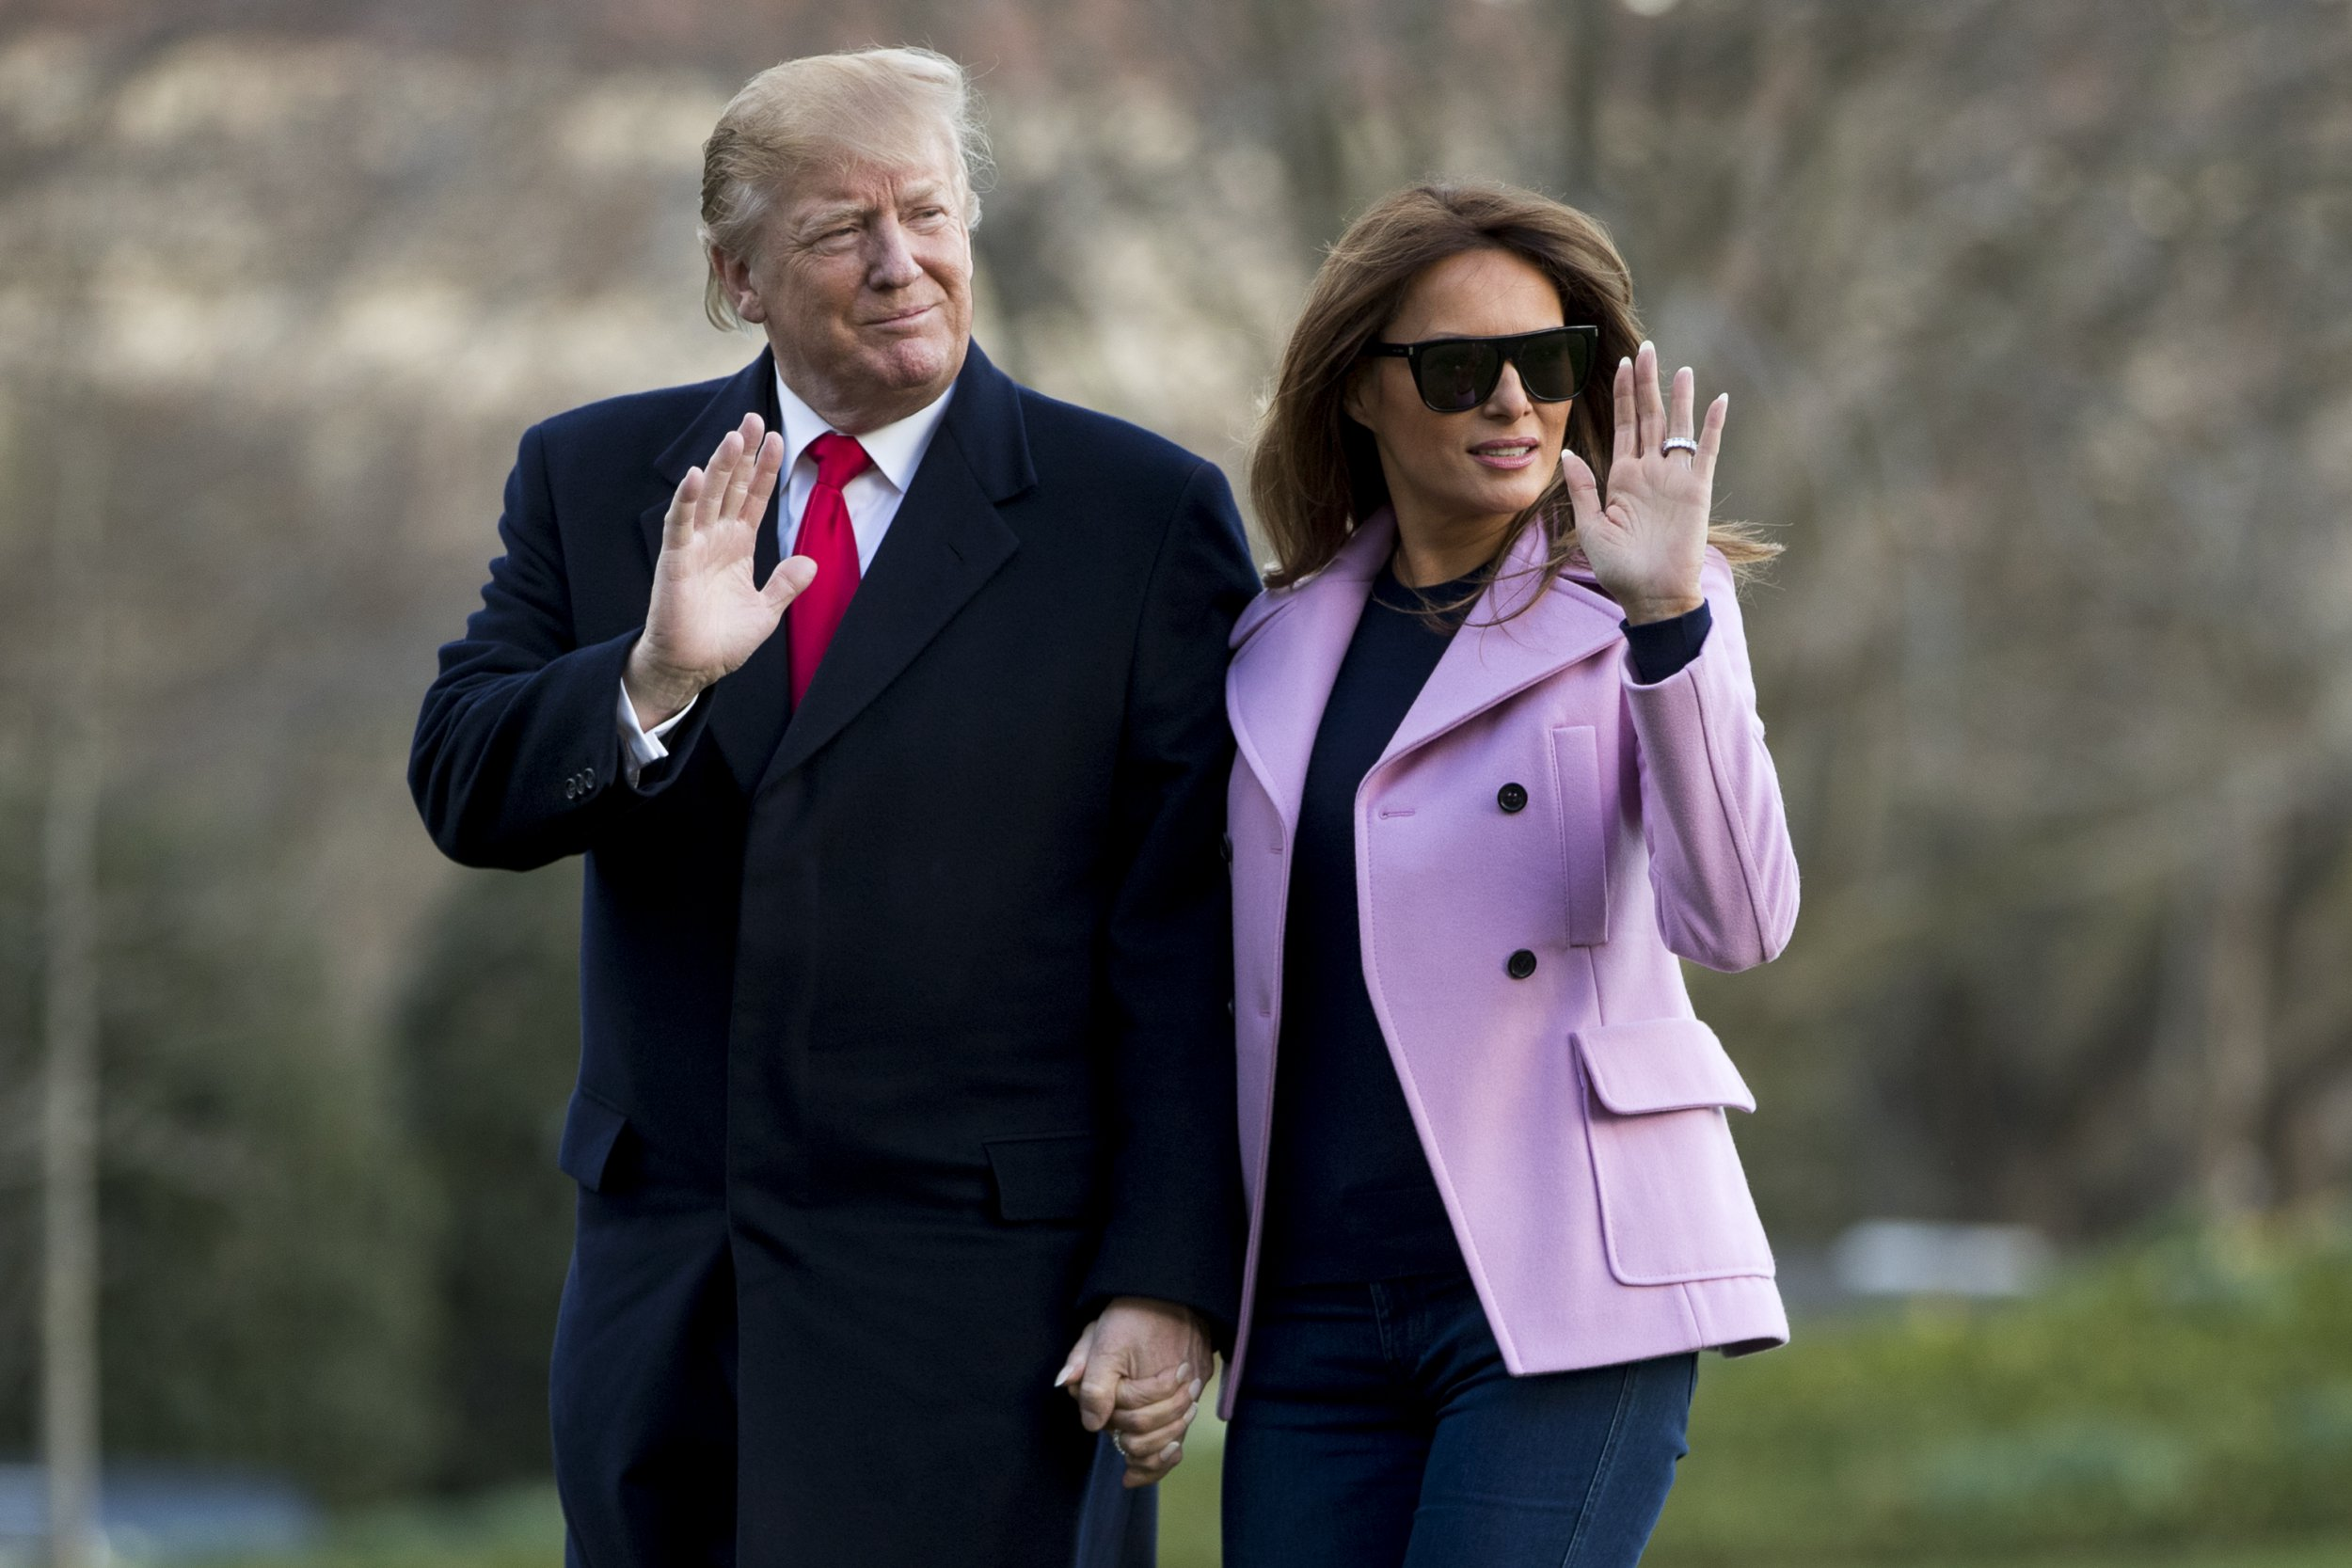 President Donald Trump and first lady Melania Trump walk along the South Lawn of the White House in Washington, Sunday, March 31, 2019, as they return from Trump's Mar-a-lago estate in Palm Beach, Fla. (AP Photo/Andrew Harnik)